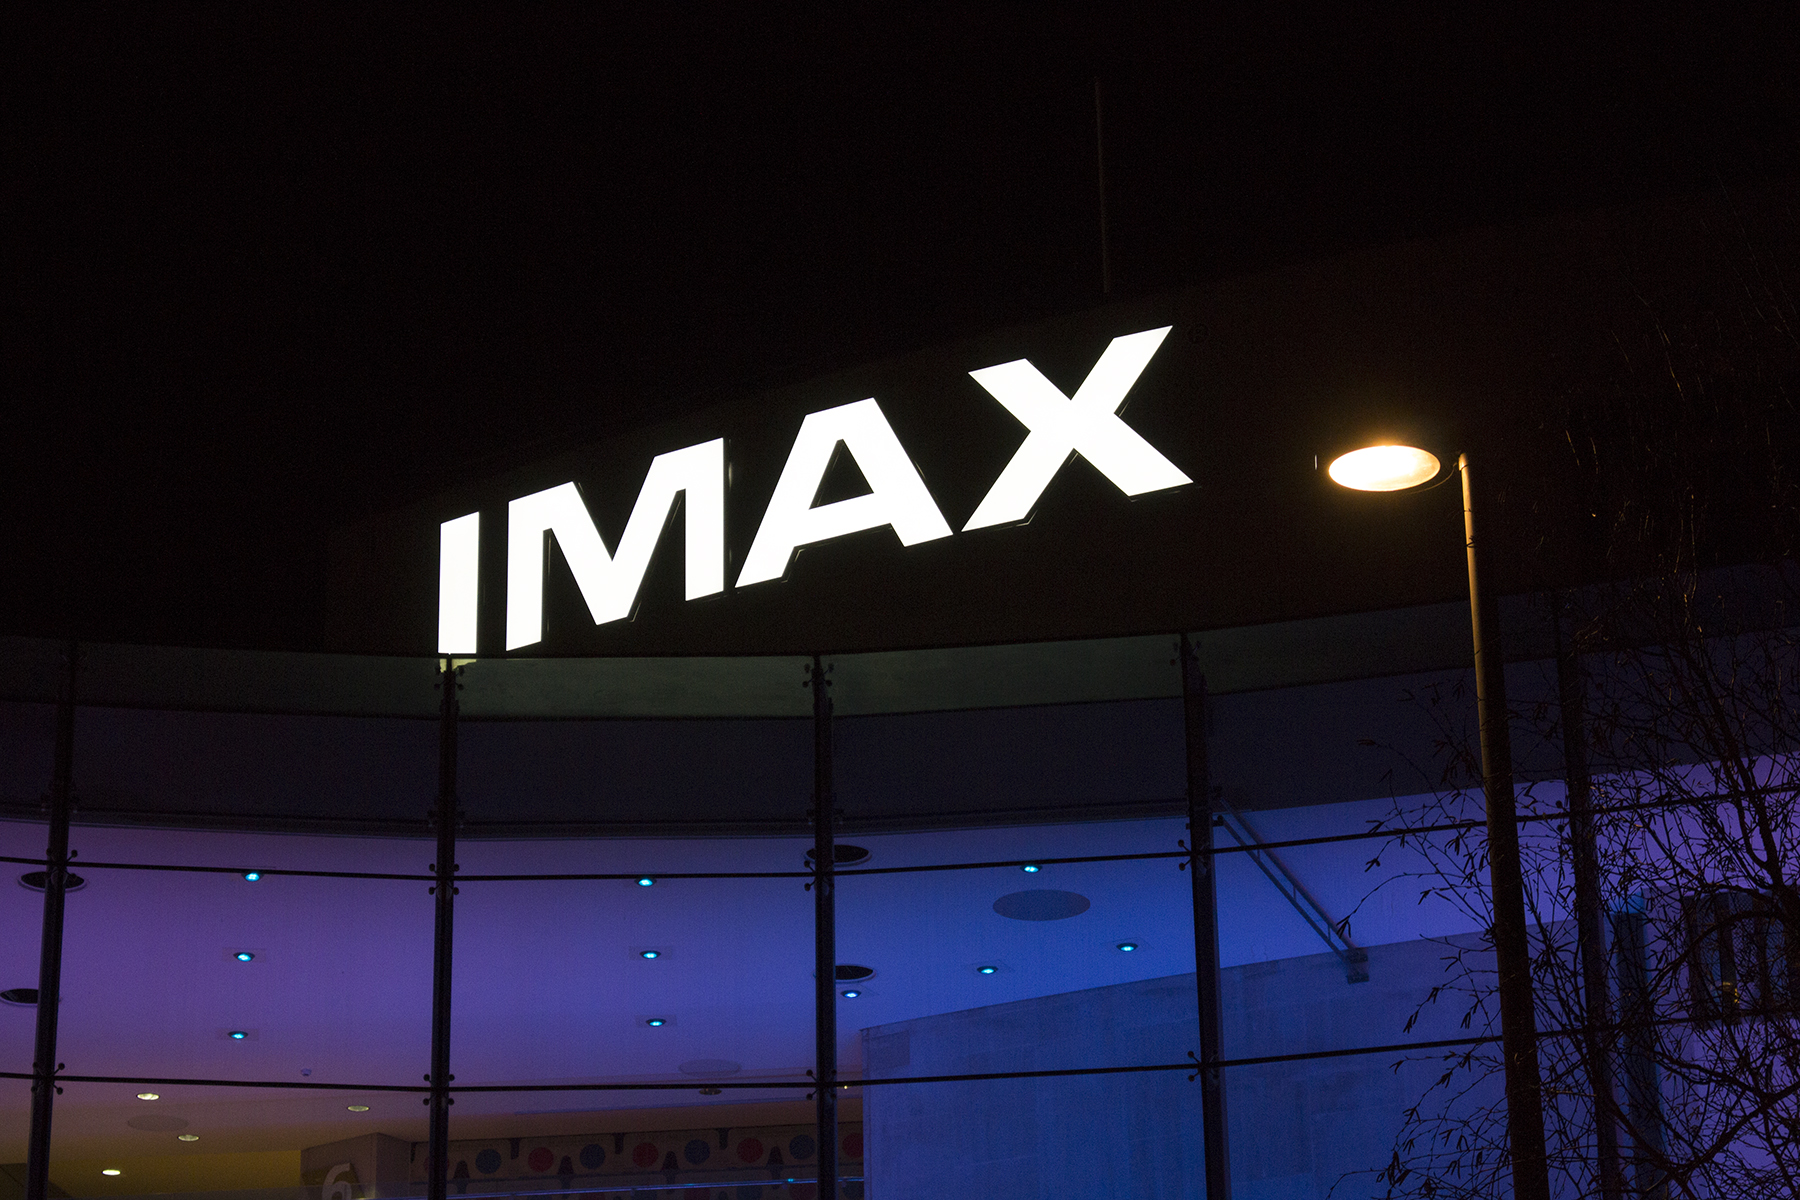 At 1.8 meters tall the IMAX letters are as tall as a person!